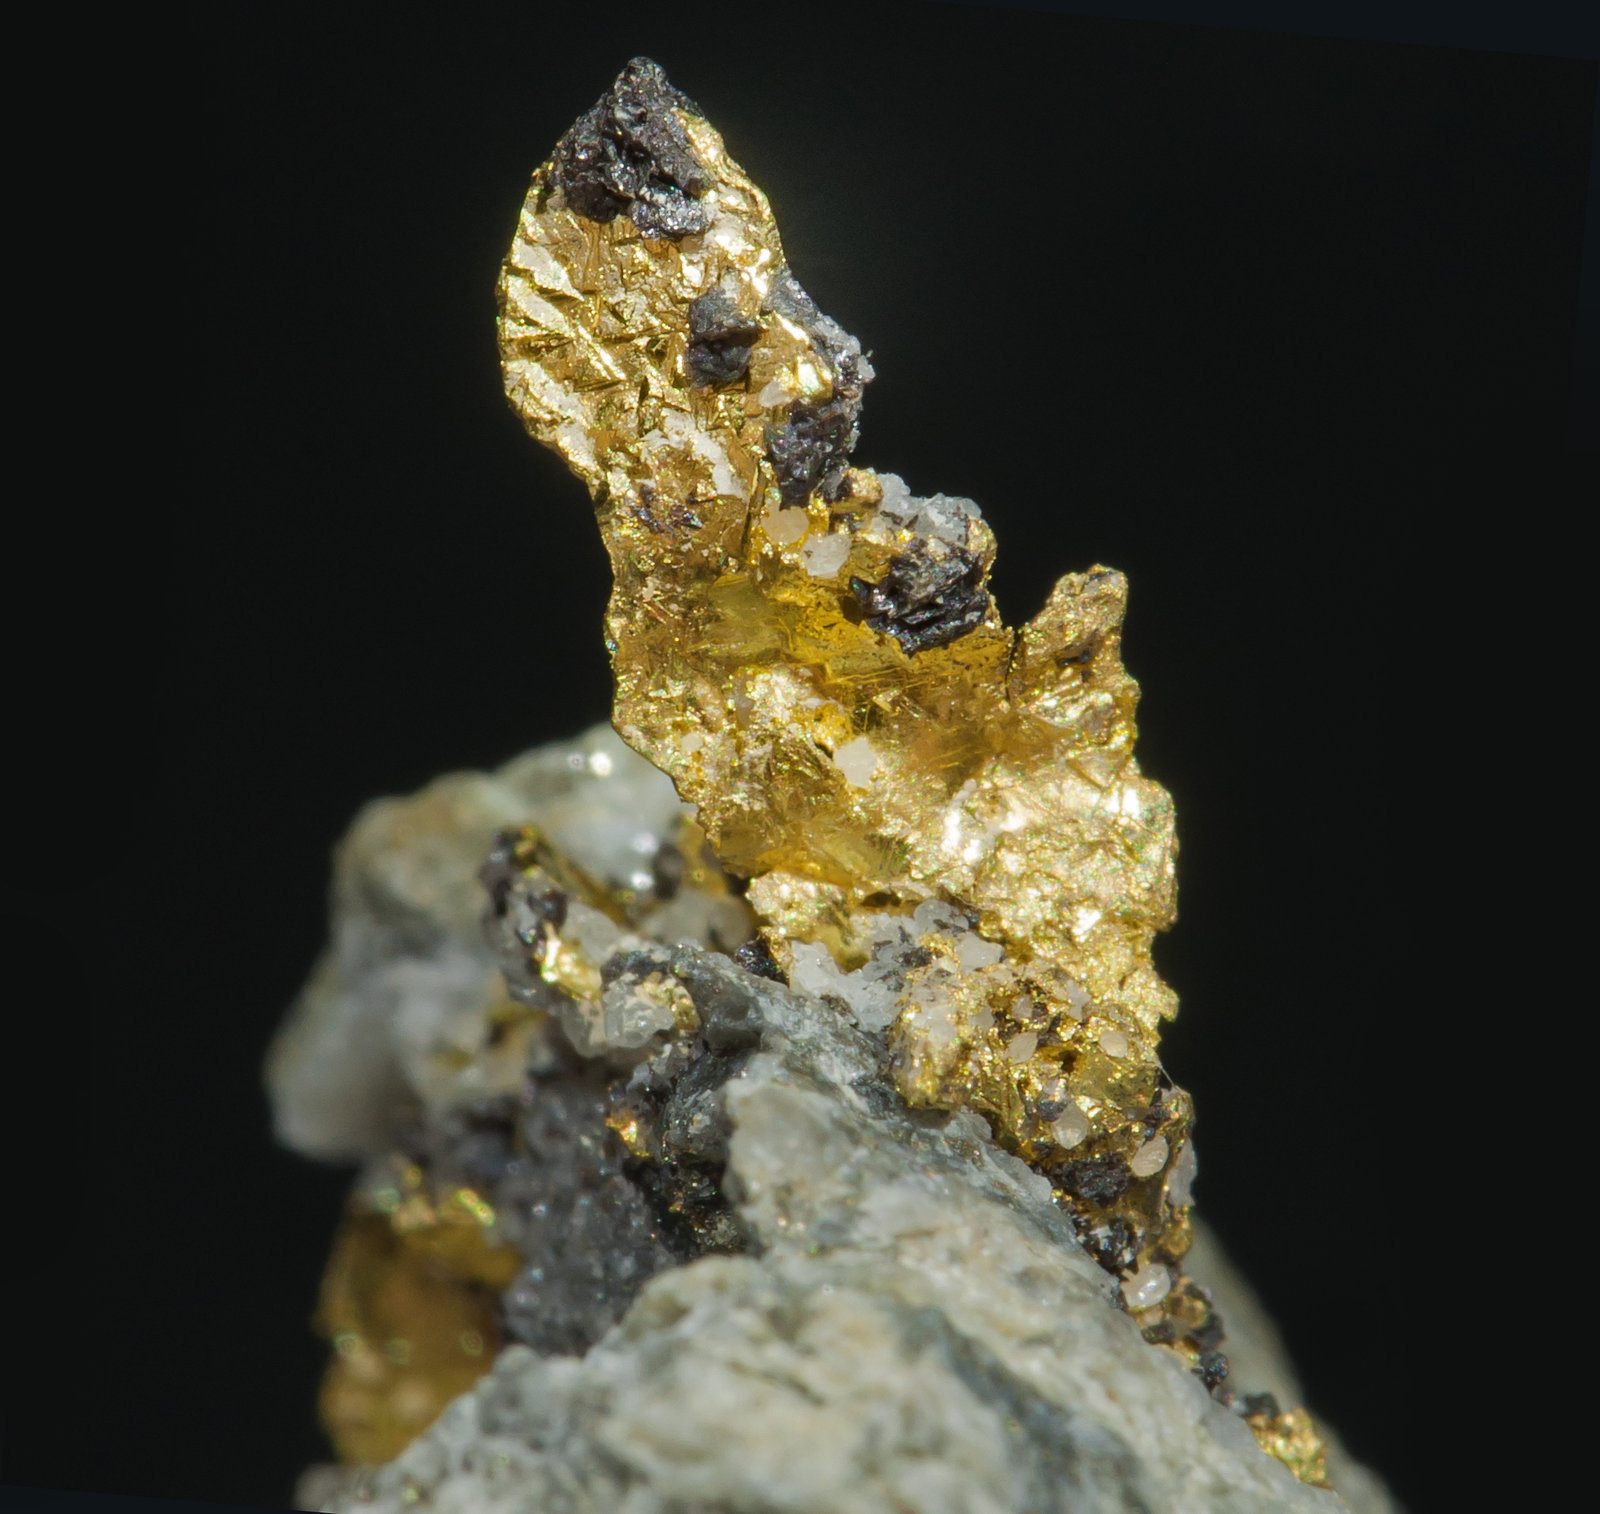 specimens/s_imagesAH1/Gold-EP68AH1d.jpg